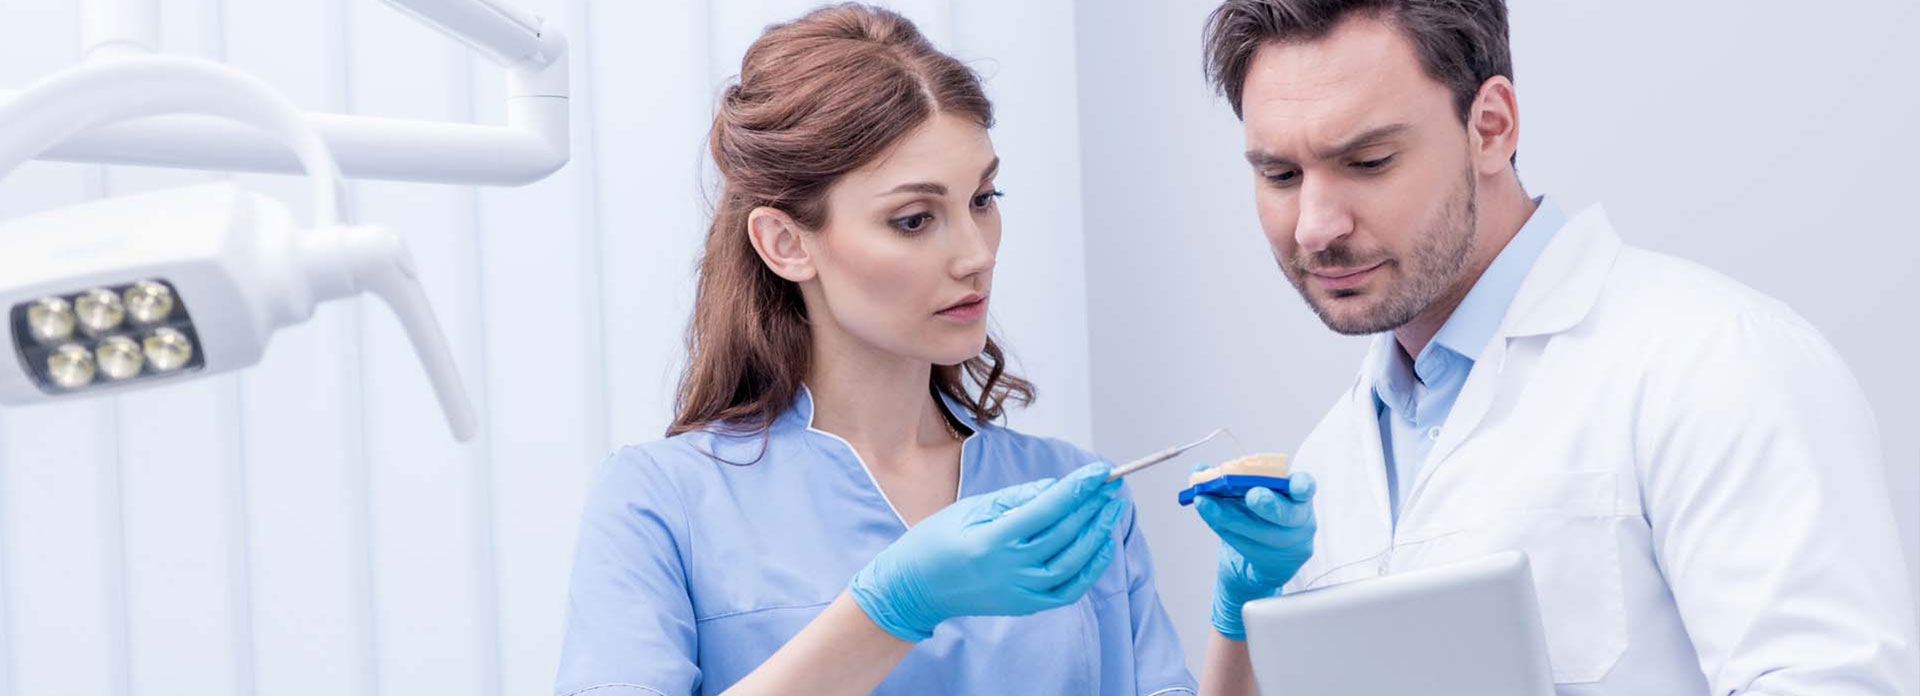 Dentists discussing with a dental model